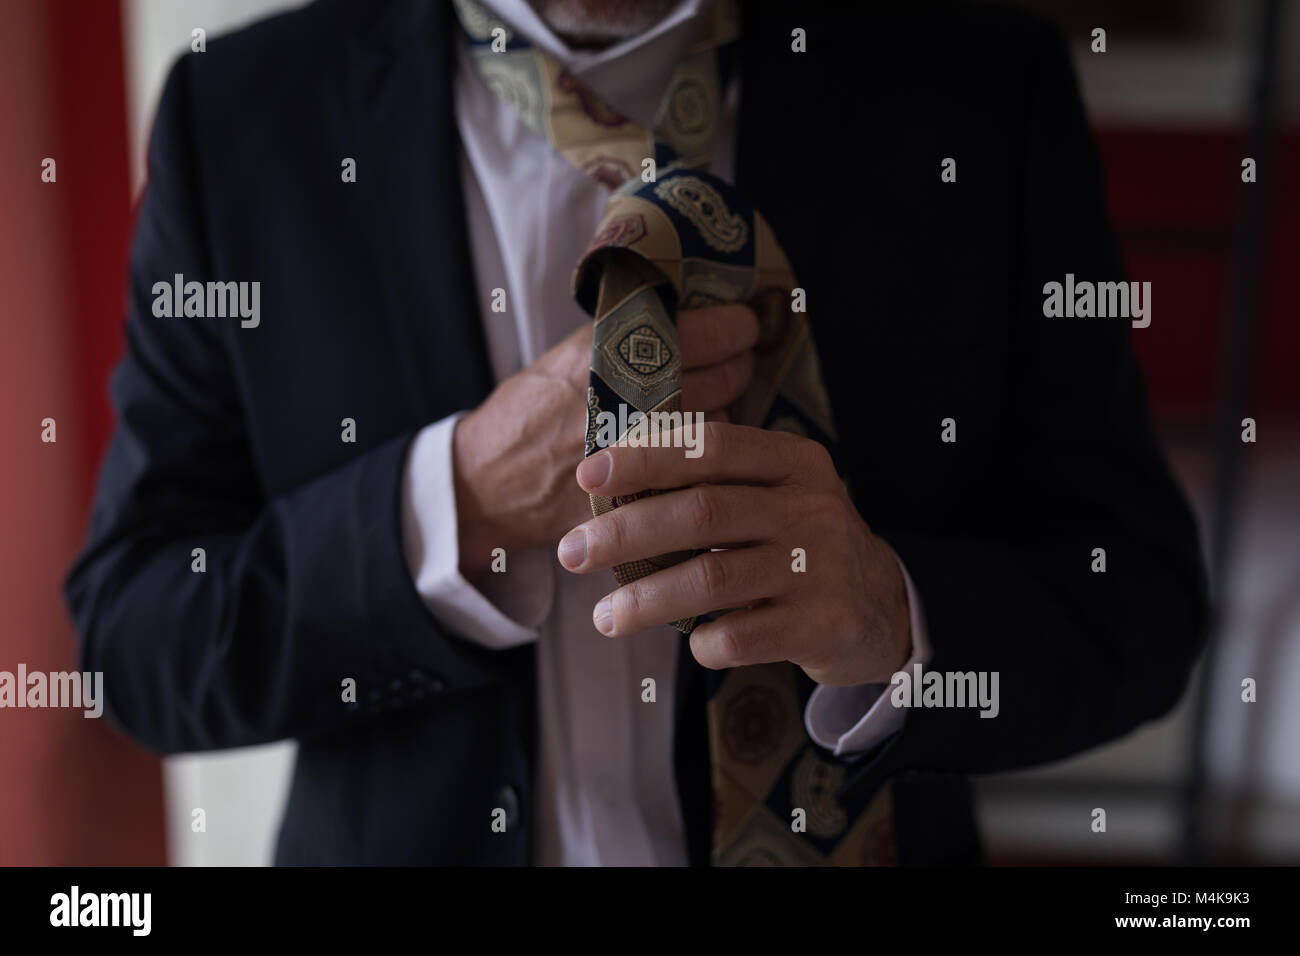 Businessman tying his tie - Stock Image